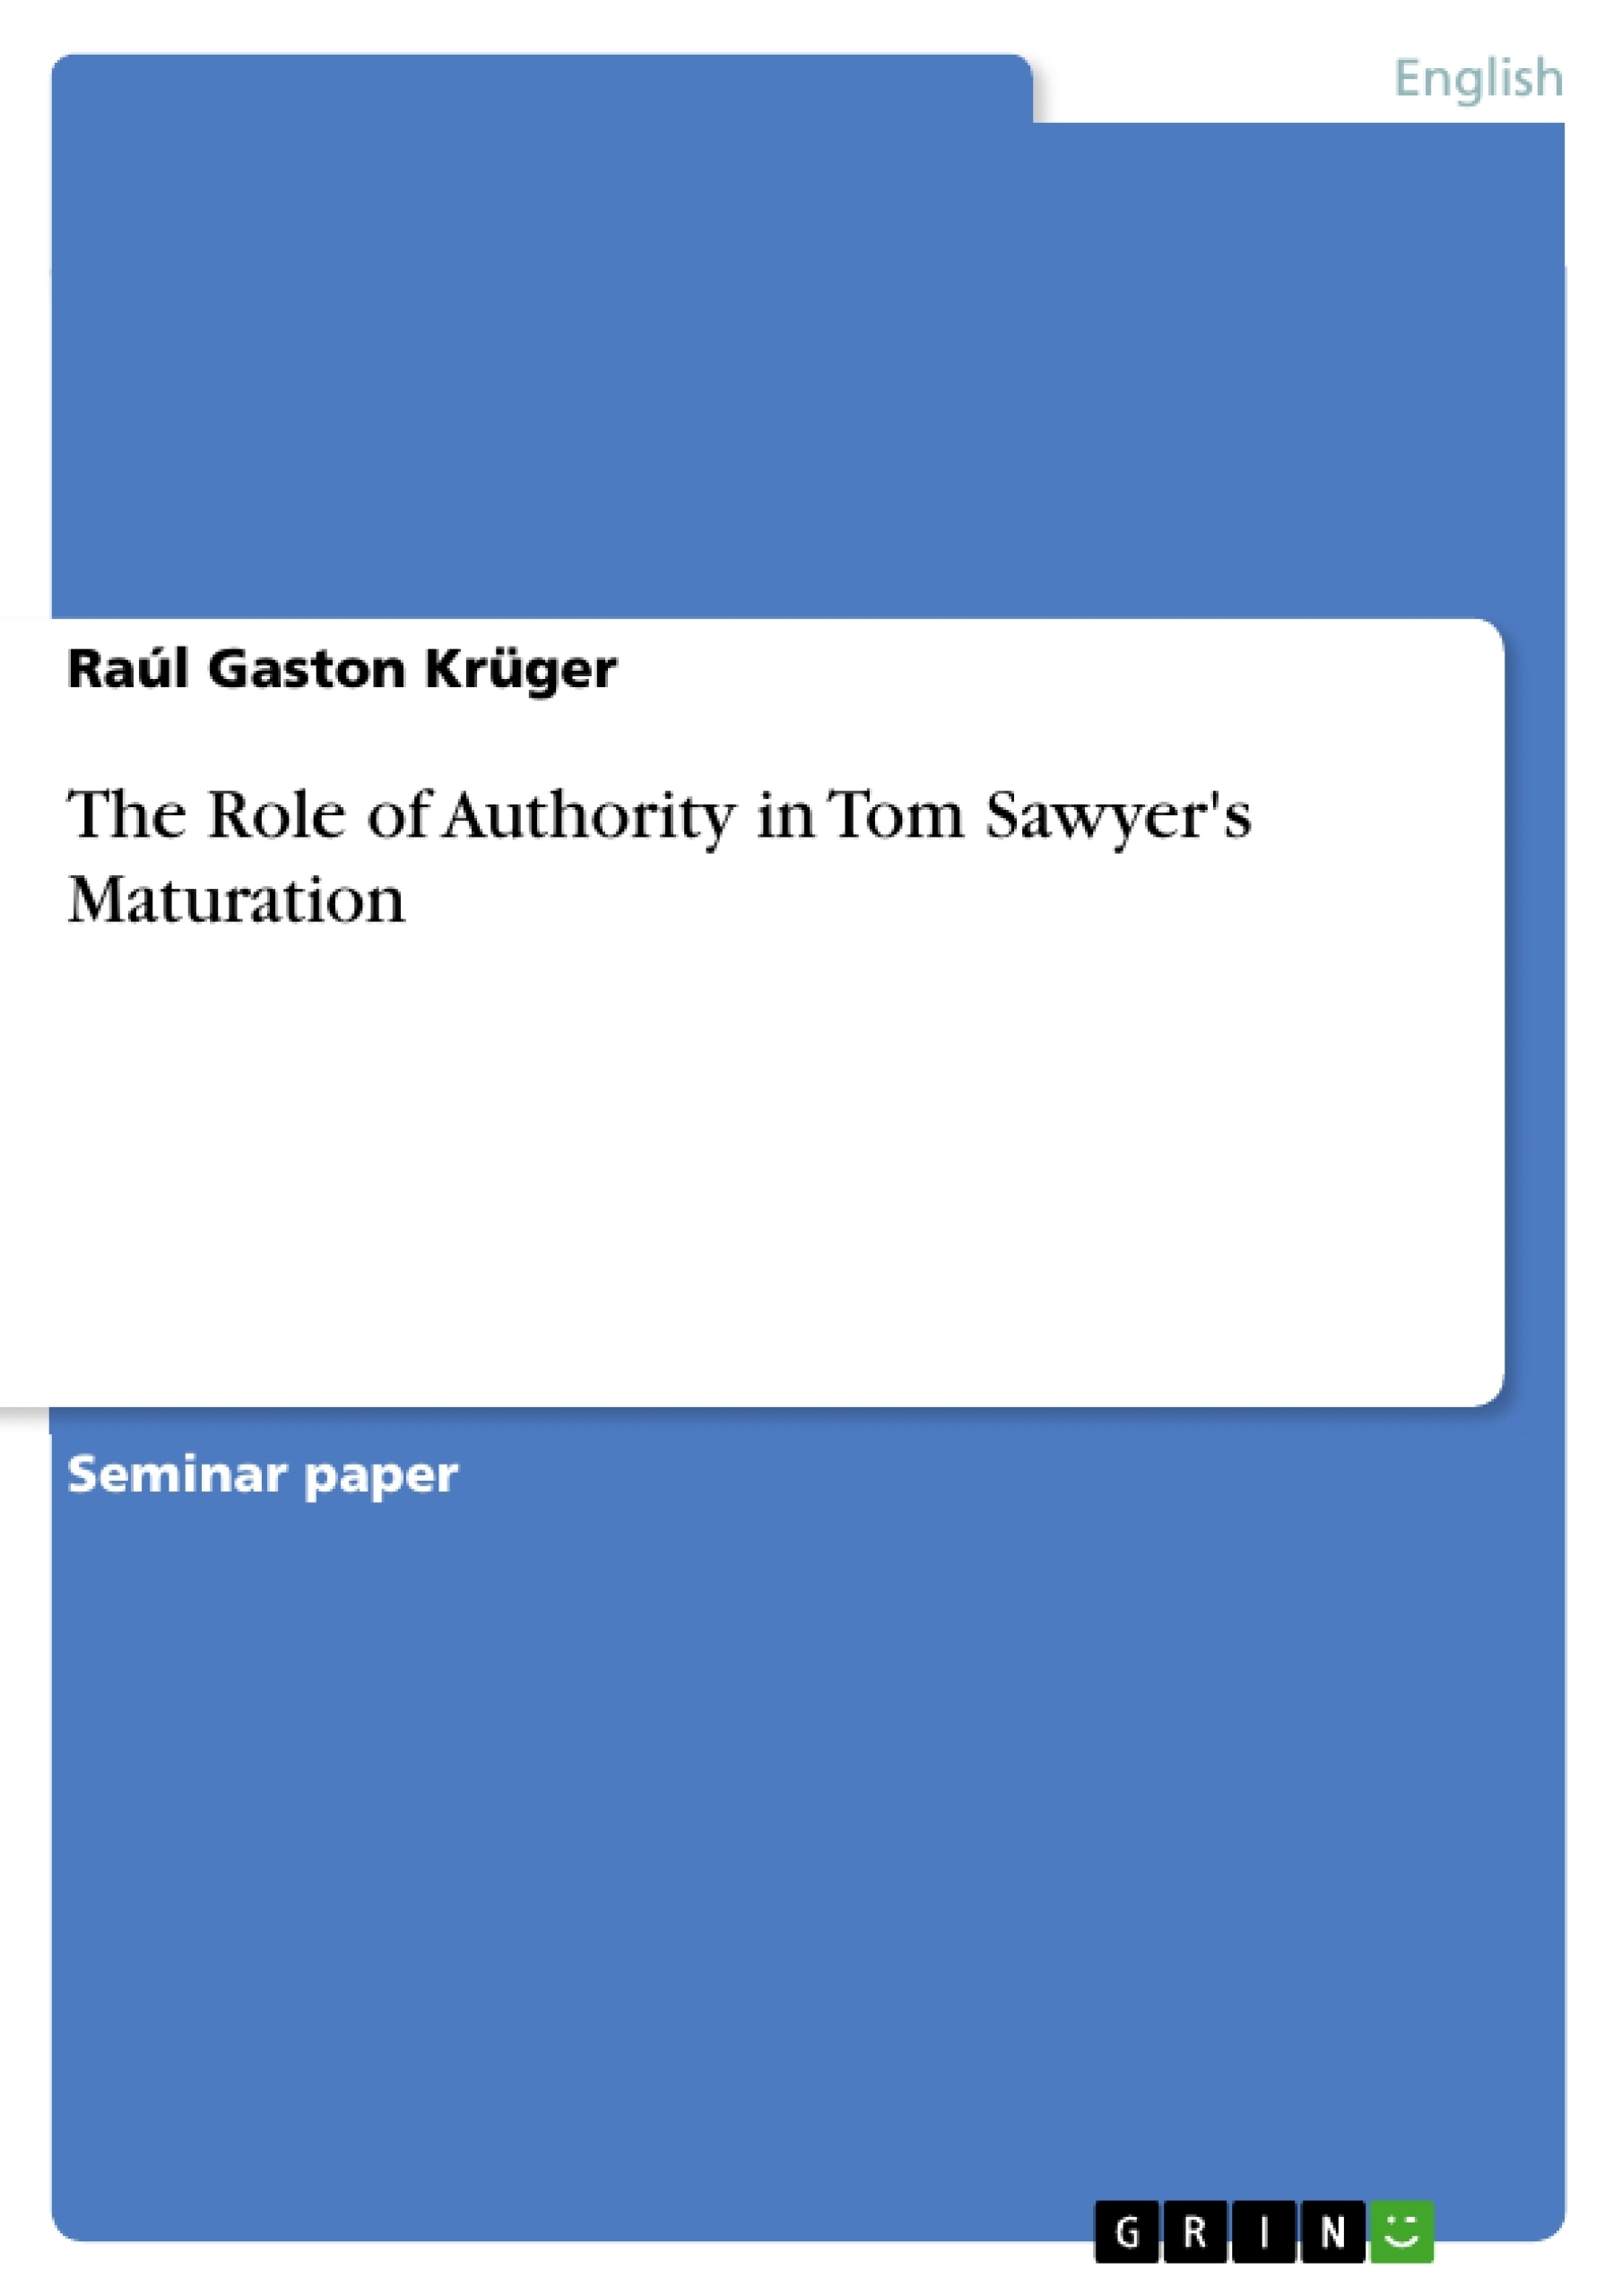 the role of authority in tom sawyer s maturation publish your the role of authority in tom sawyer s maturation publish your master s thesis bachelor s thesis essay or term paper